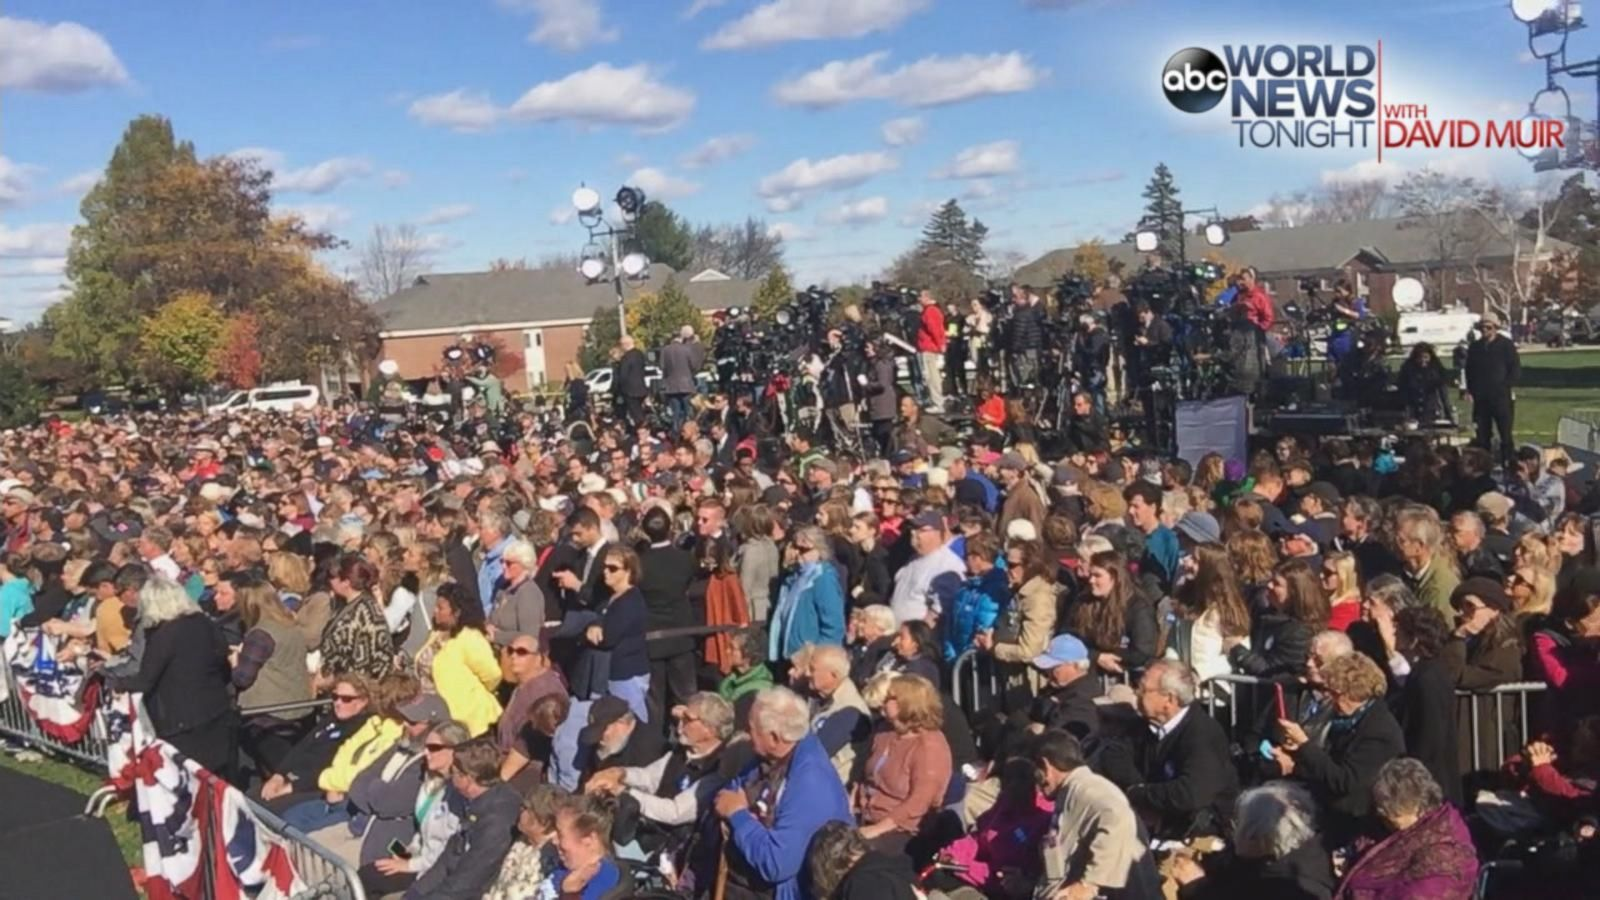 VIDEO: 2016 - 15 Days: Warren Joins Clinton in New Hampshire Battleground